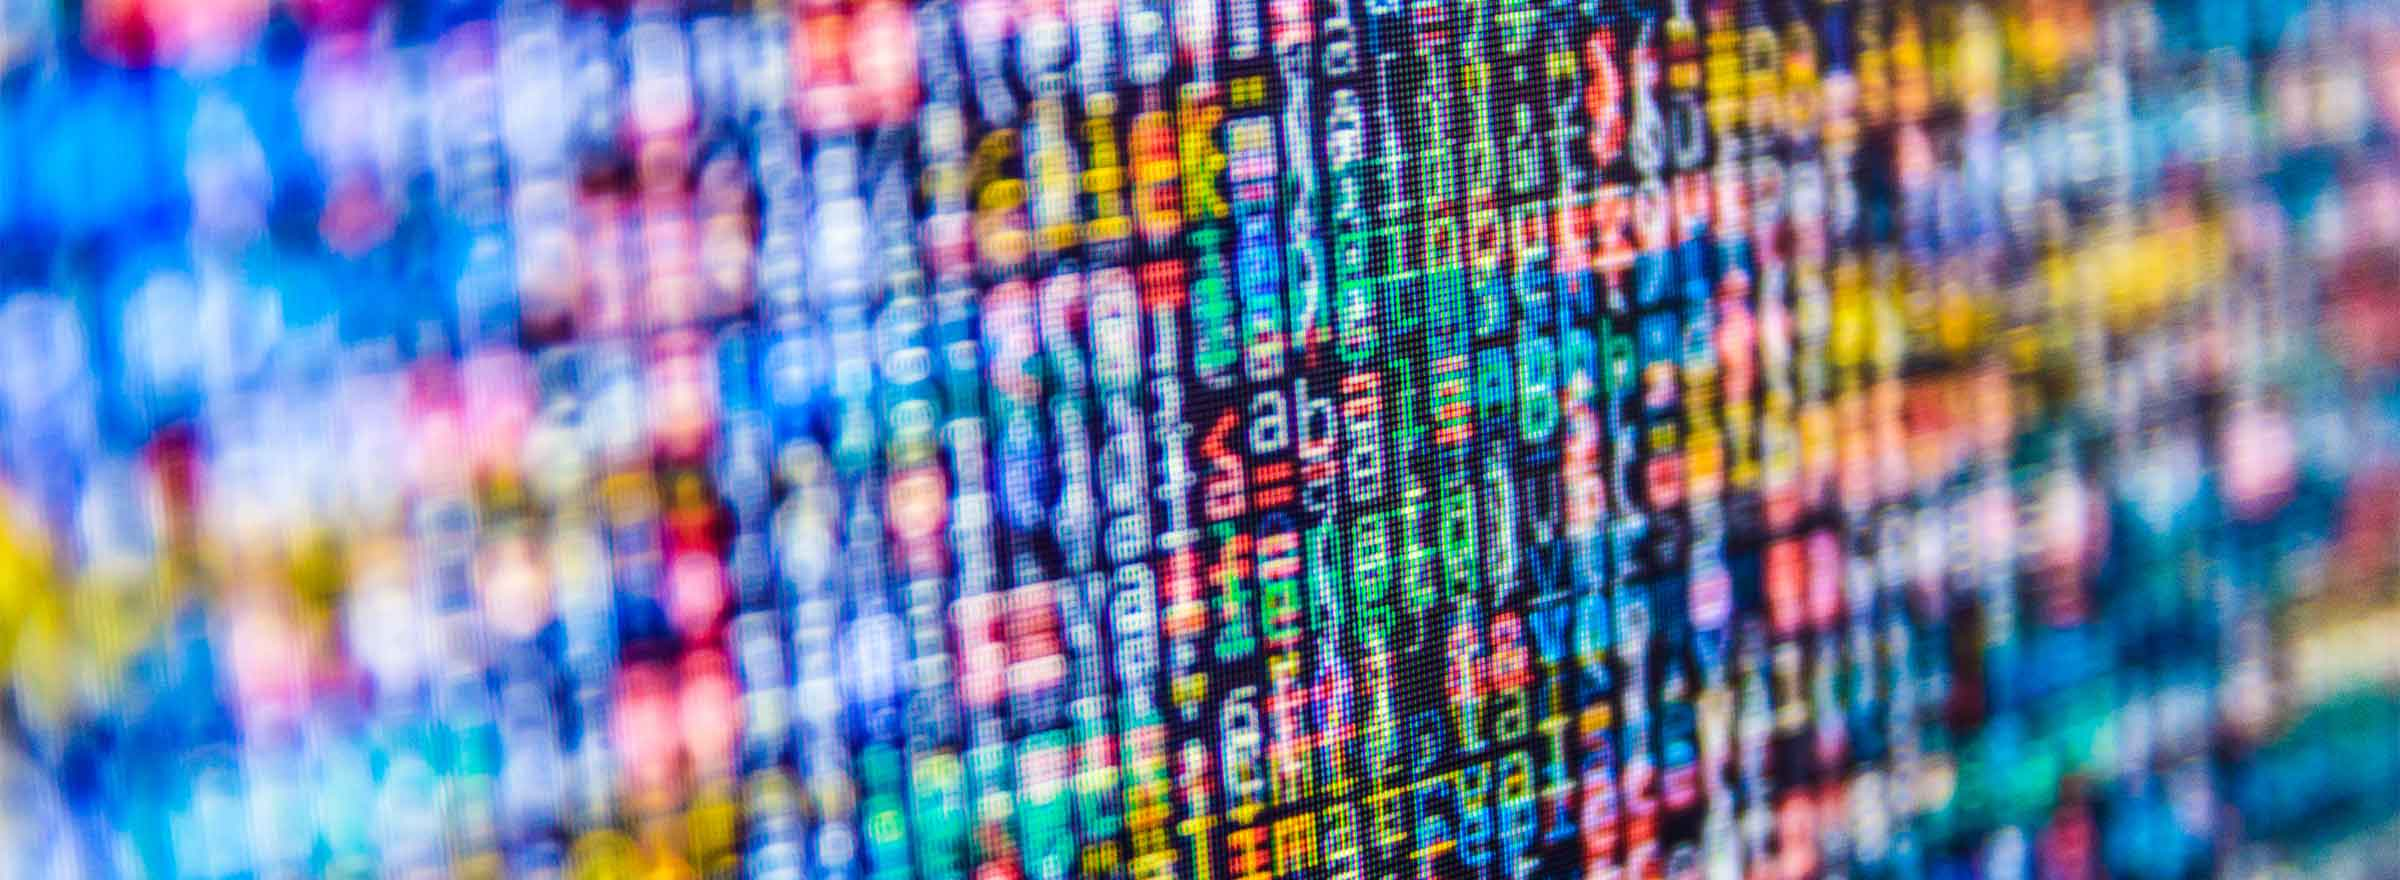 out-of-focus image of computer code in many colors